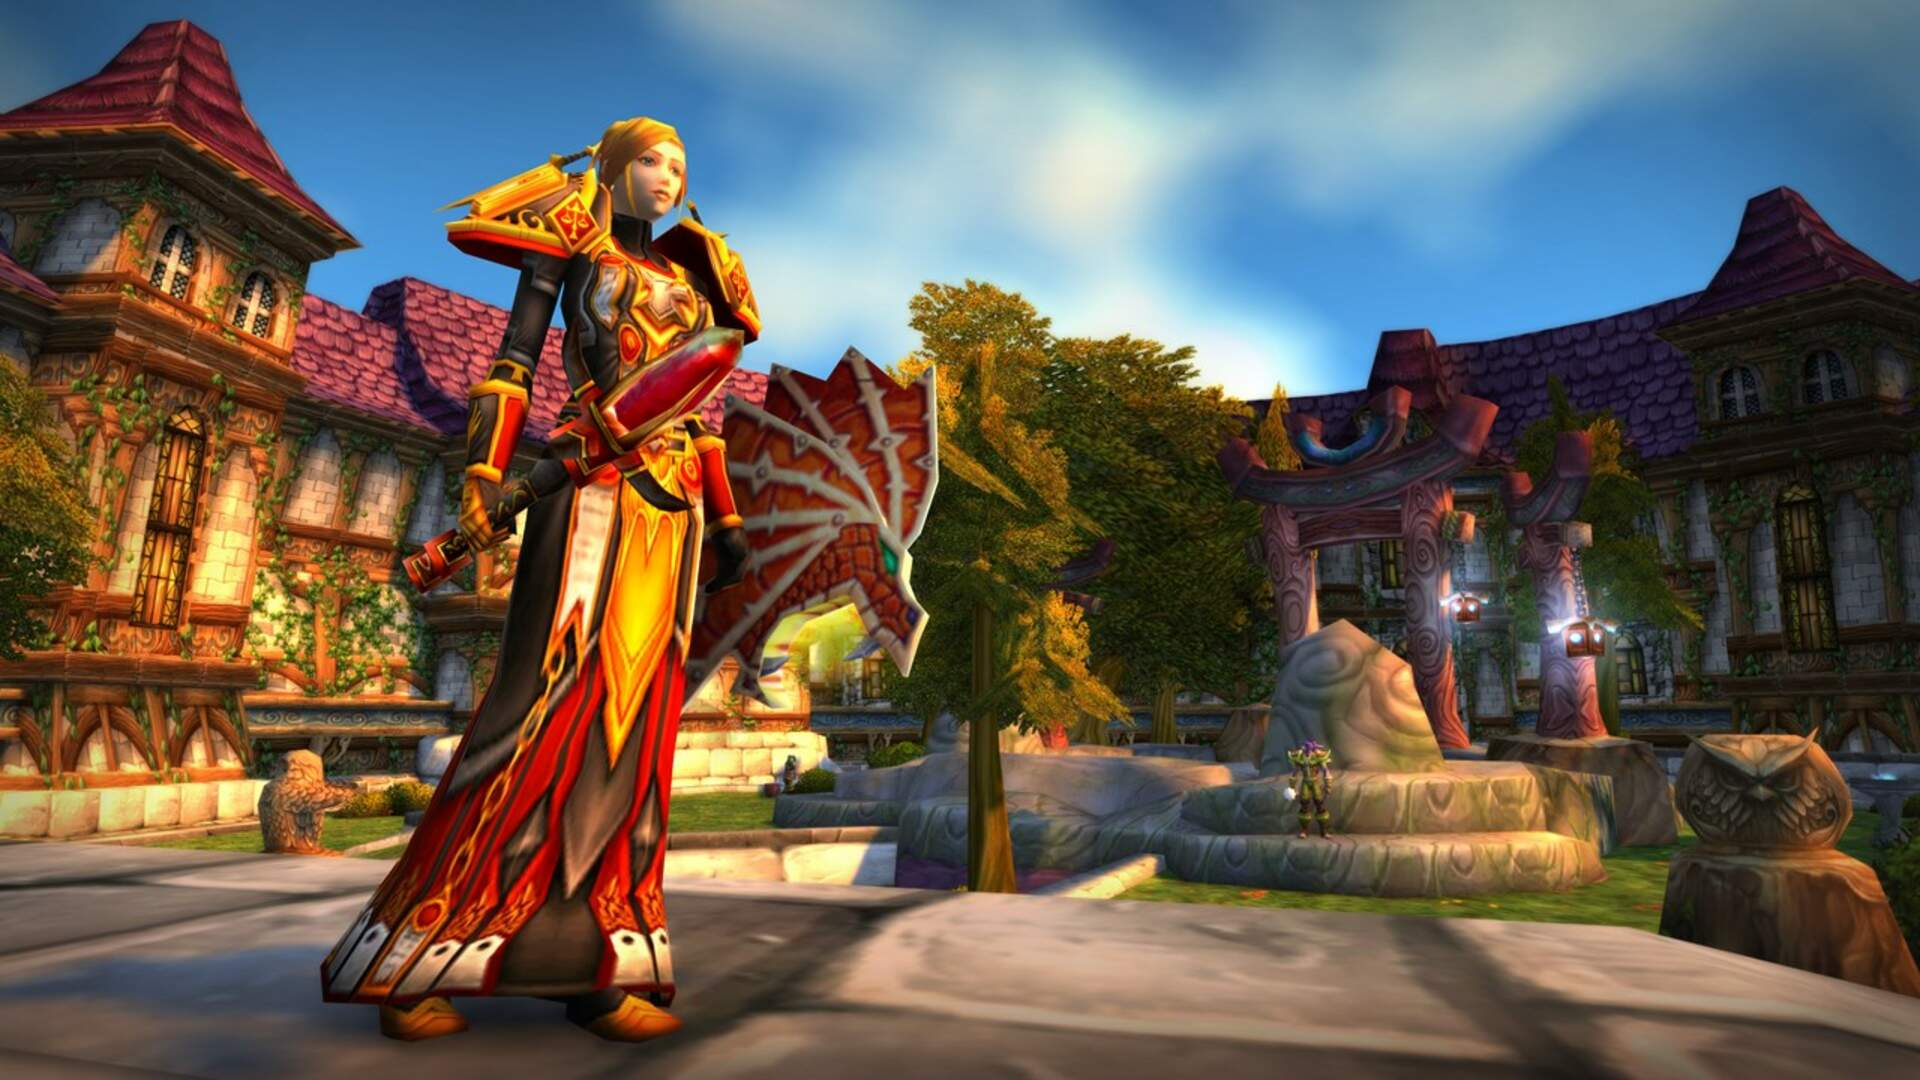 Free WoW Classic Character Moves Are Coming to Help the Overcrowded Realm Problem